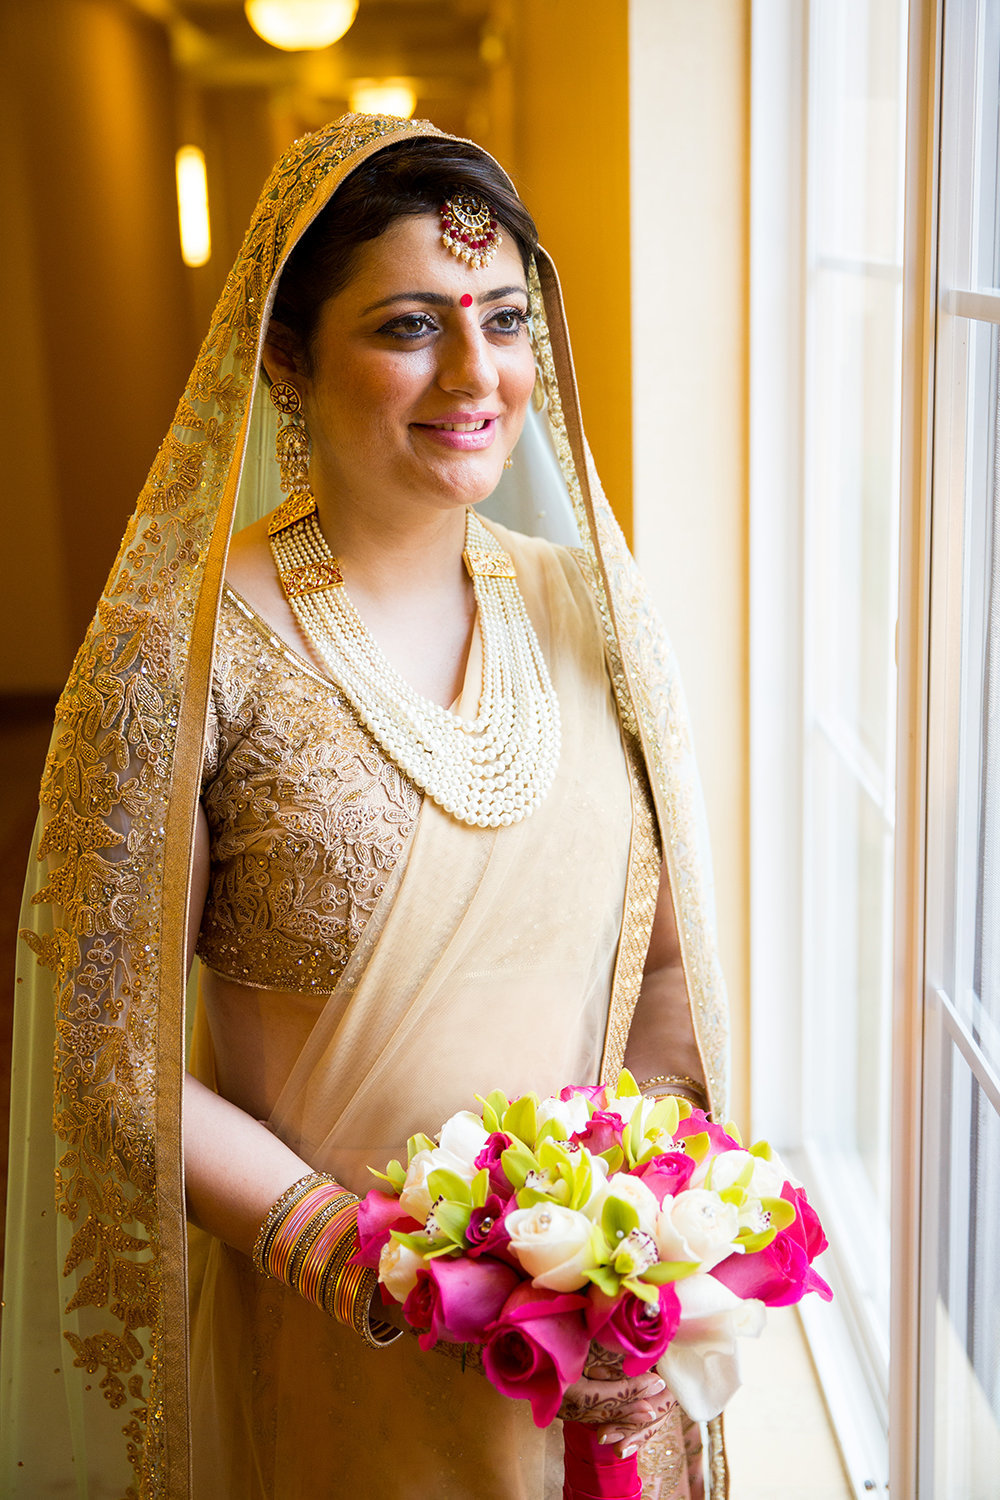 Bridal Portrait of Hindu Bride in Gold Sari